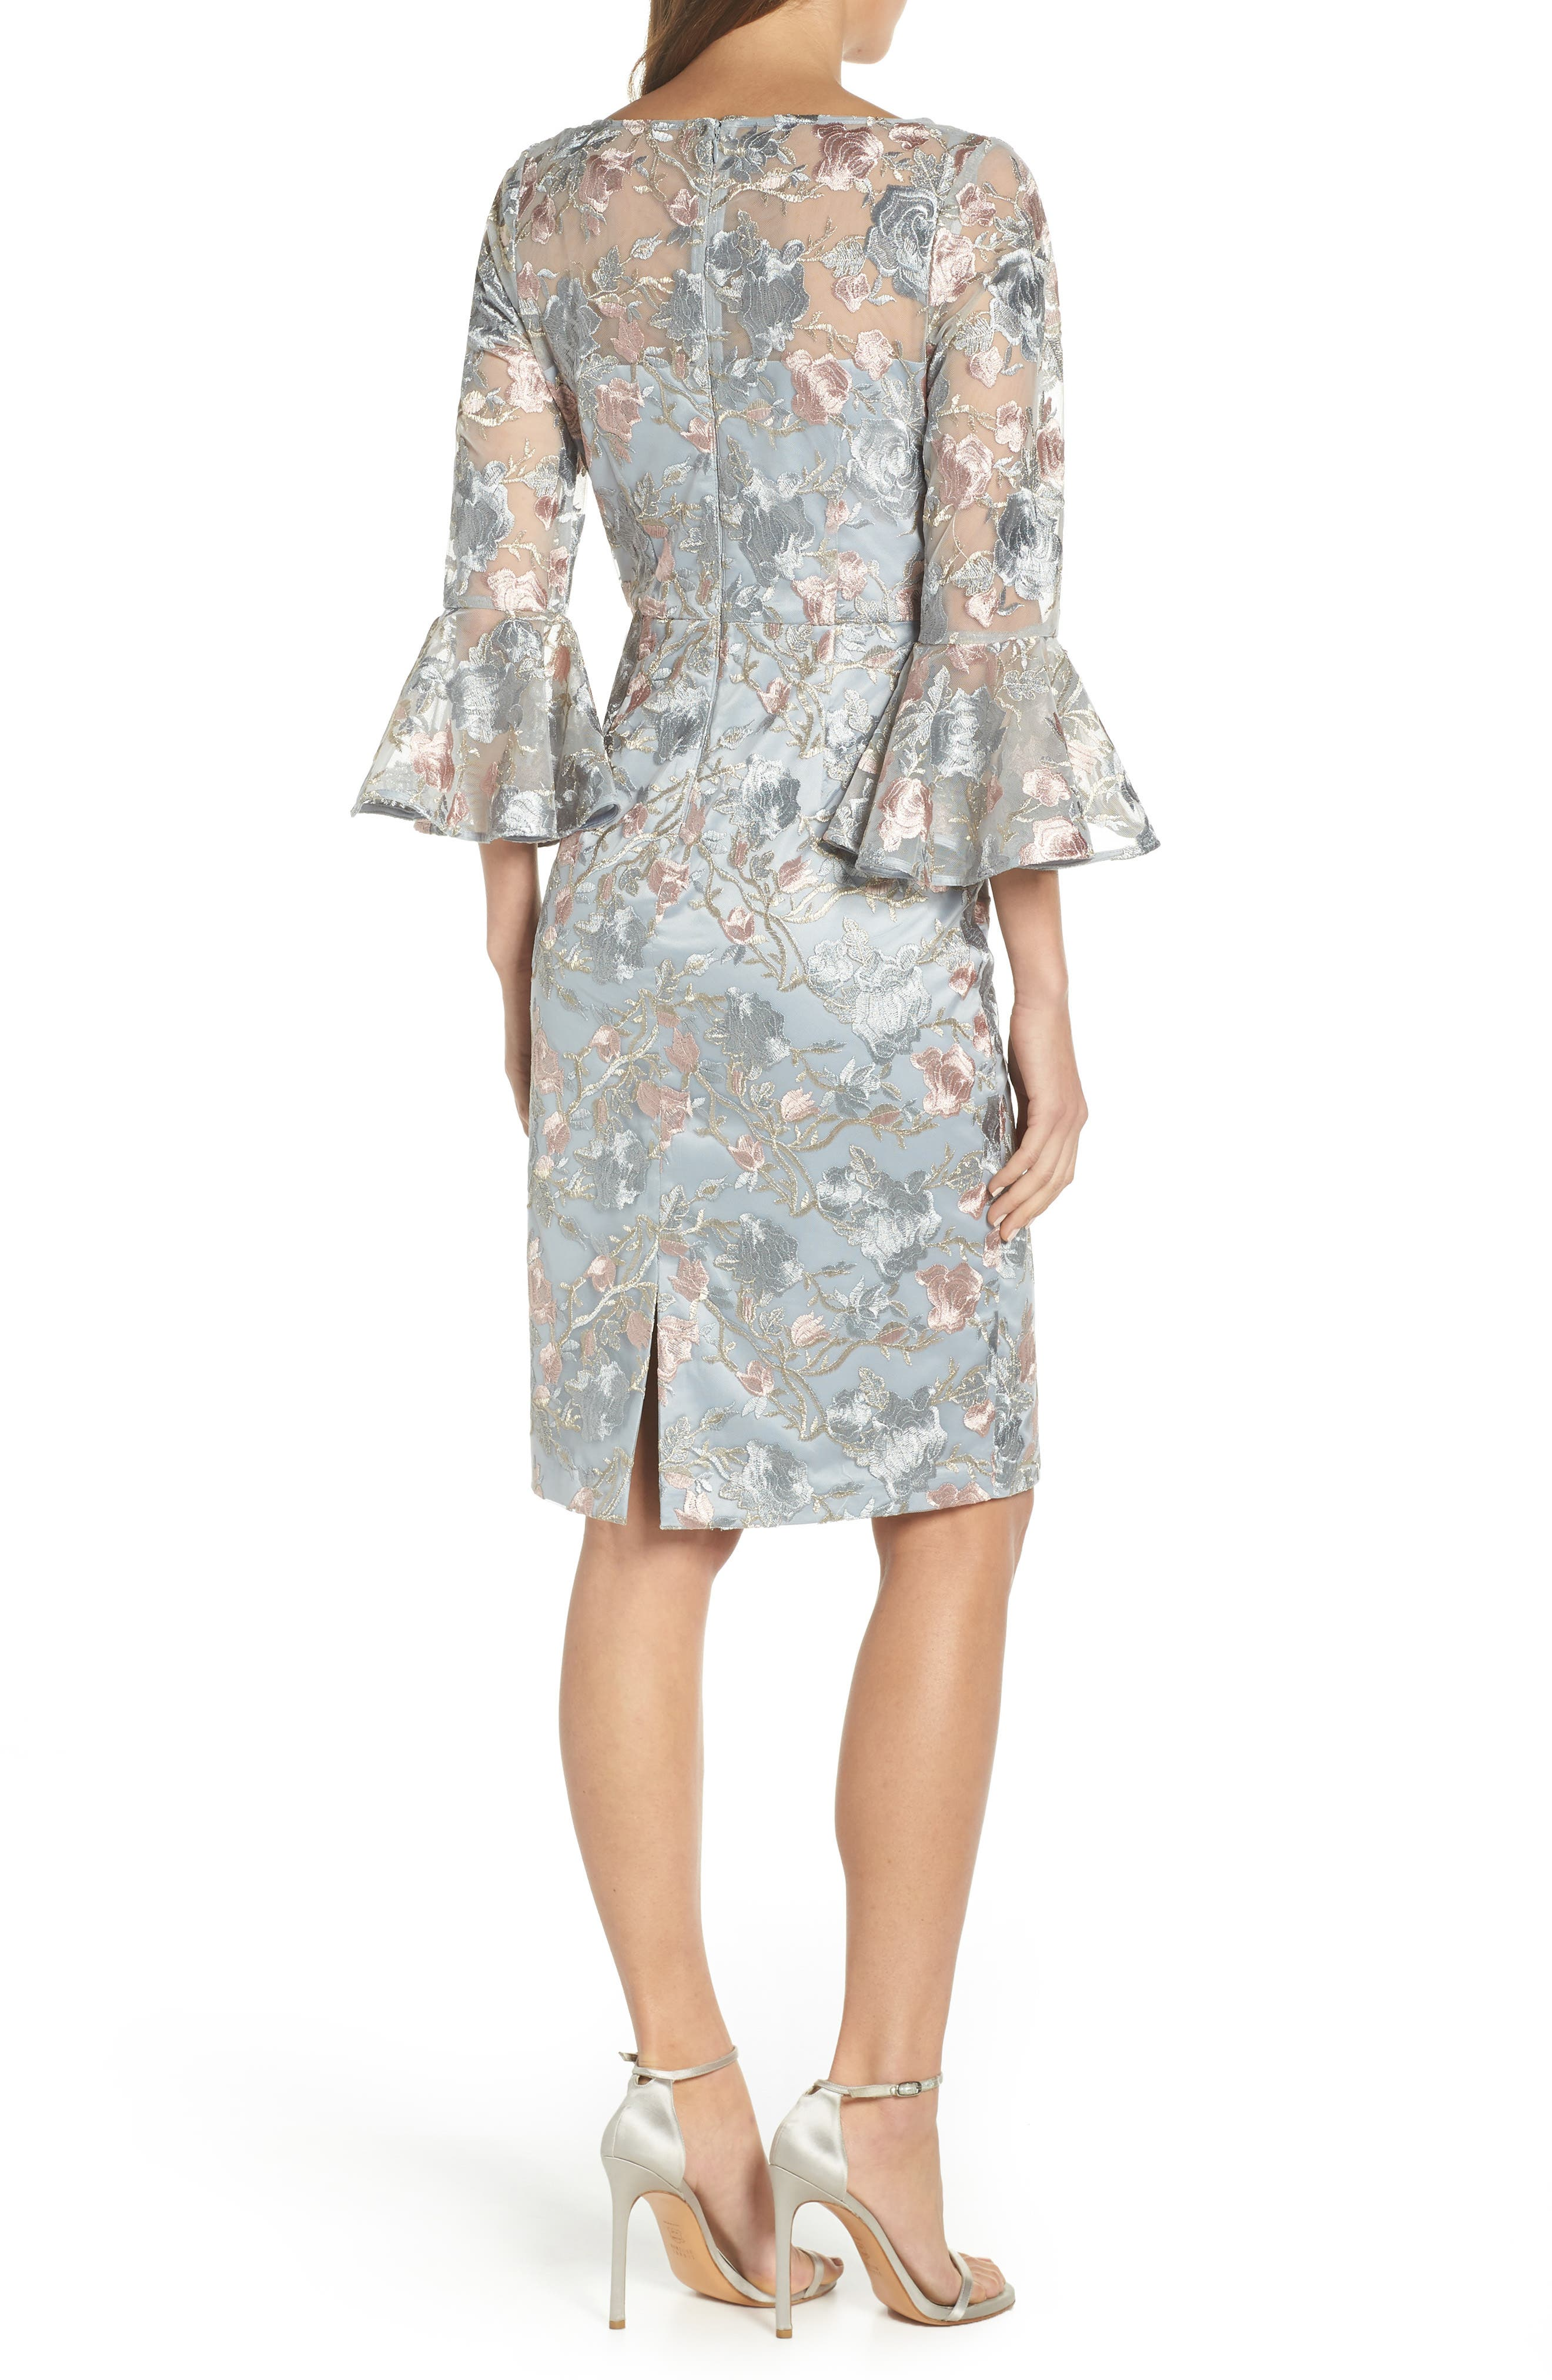 ELIZA J, Floral Embroidered Sheath Dress, Alternate thumbnail 2, color, 421